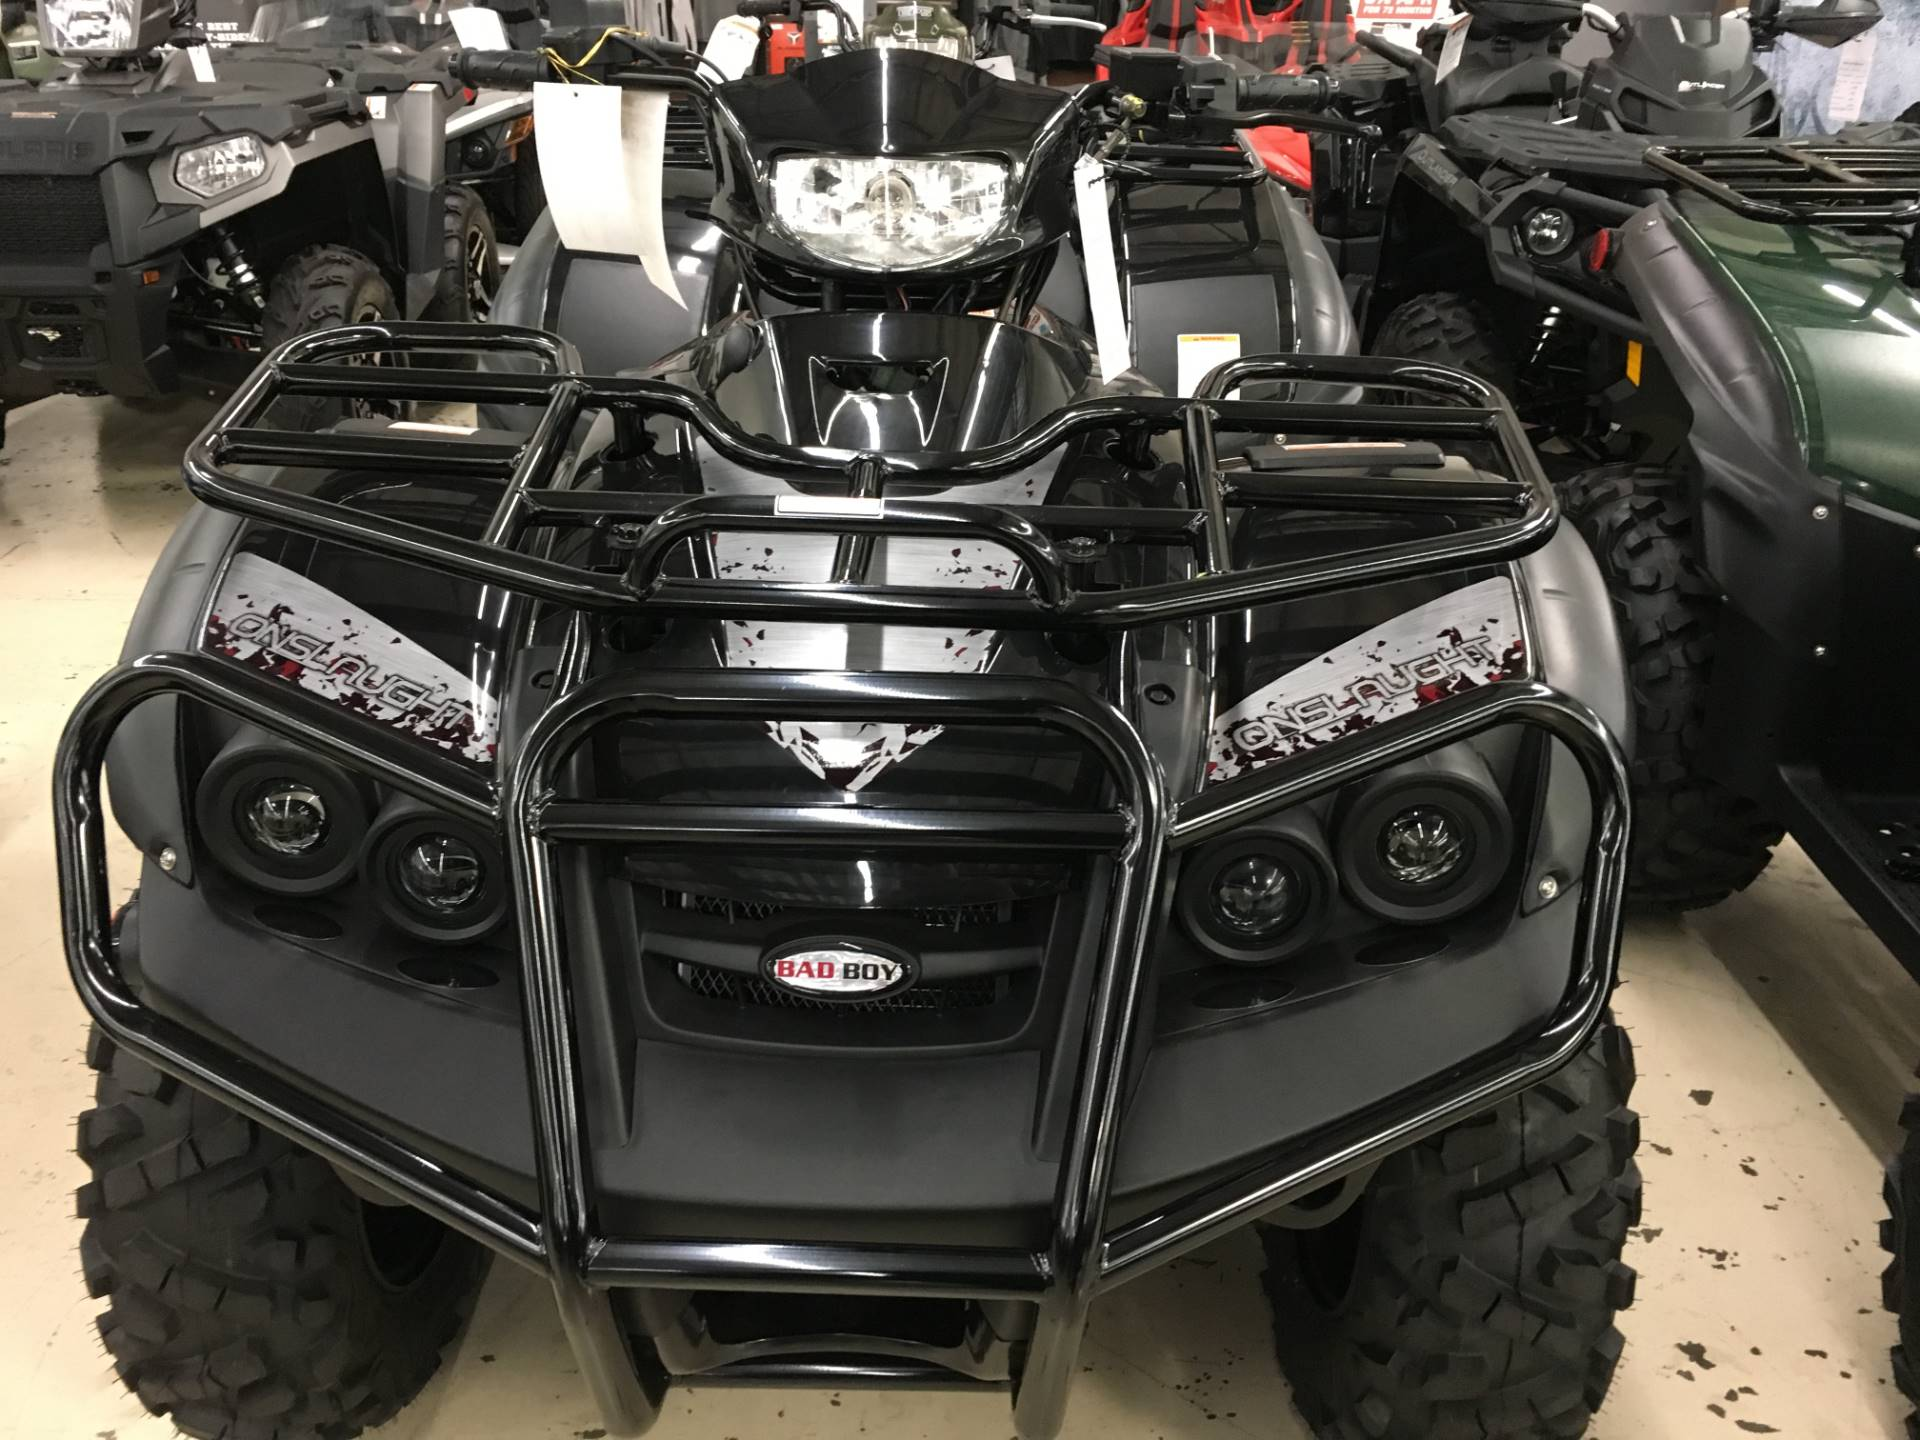 2017 Bad Boy Off Road Onslaught 550 EPS in Corona, California